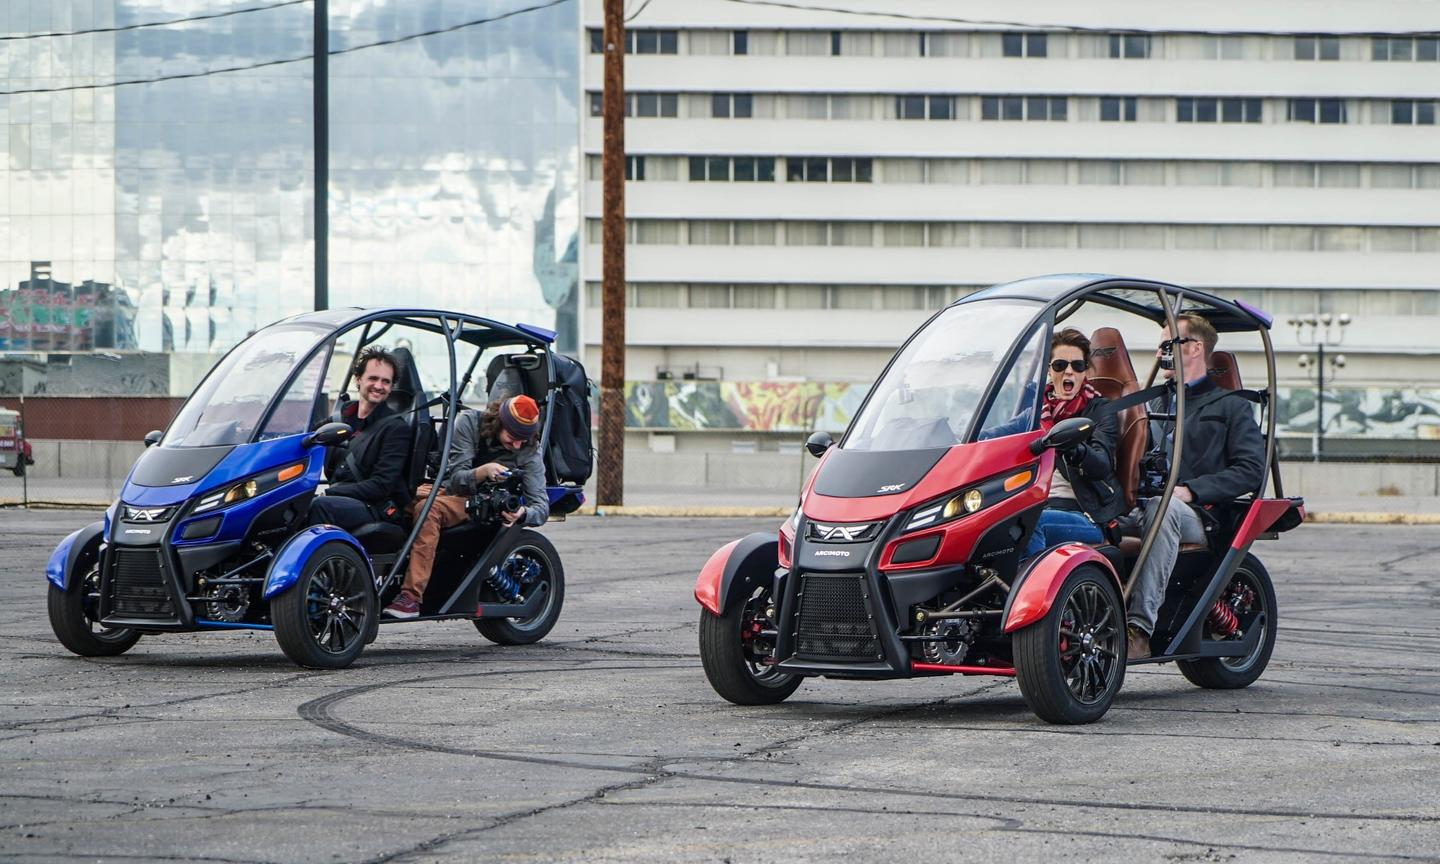 Arcimoto has built 15 beta vehicles, which are destined for fleet use and delivery to early adopters, and production of 25 Pilot Series Fun Utility Vehicles is now underway